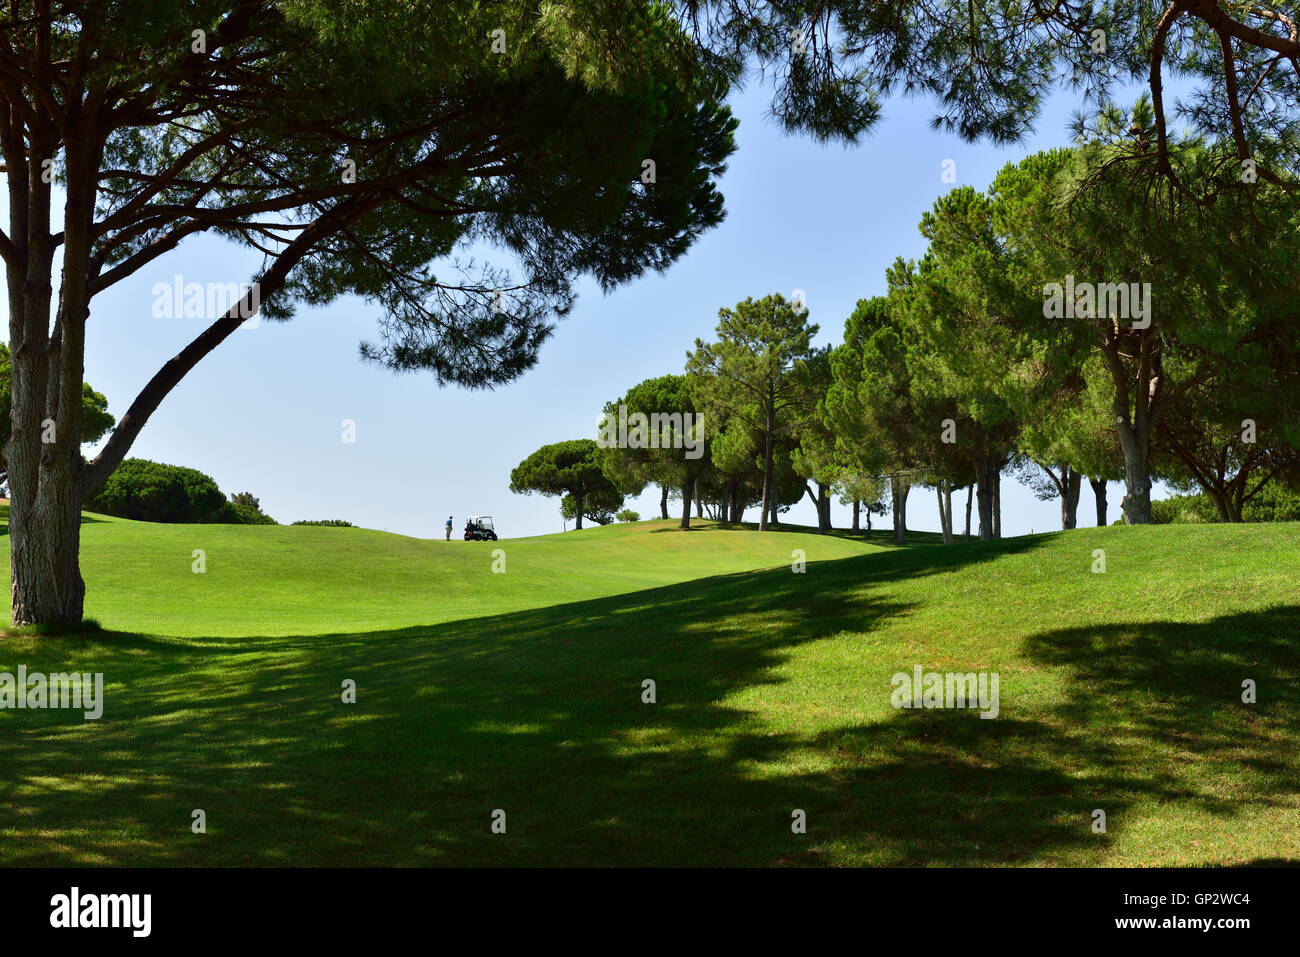 Golf buggy on green slopes of Cascatas Golf Resort & Spa, Vilamoura, Algarve, south Portugal - Stock Image